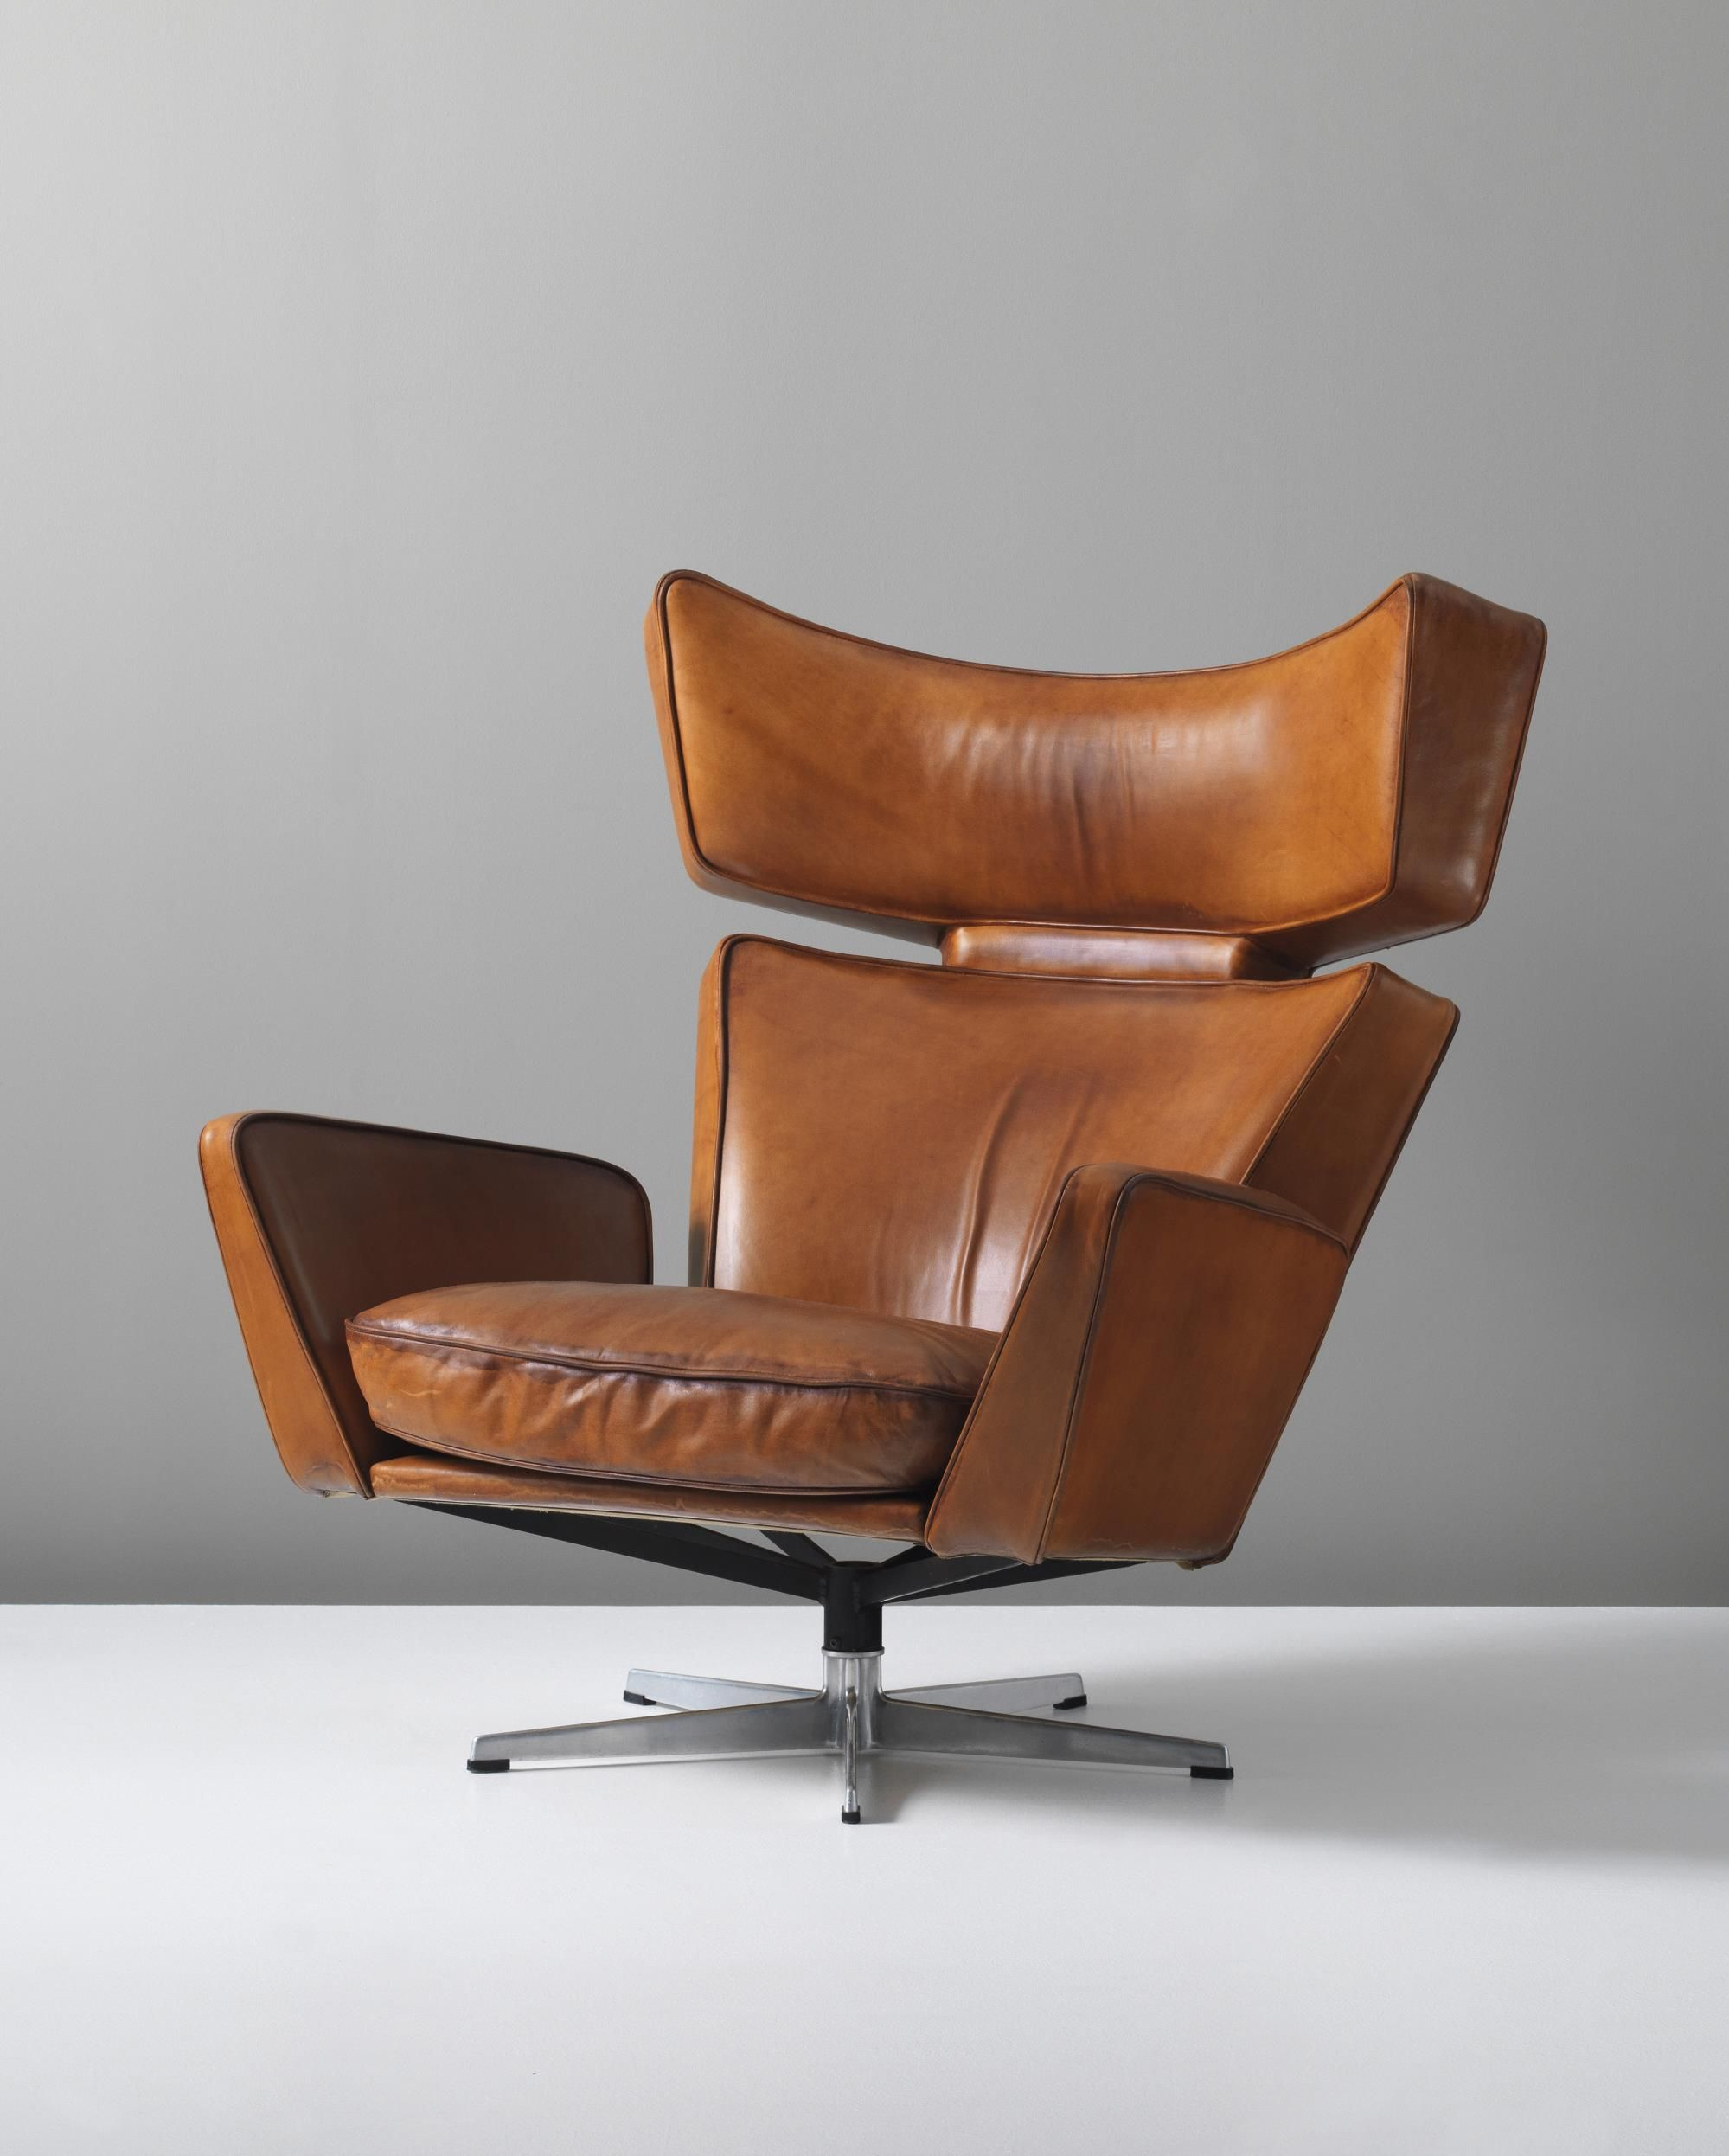 lounge leather barcelona replica rohe mies chair van der cognac premium